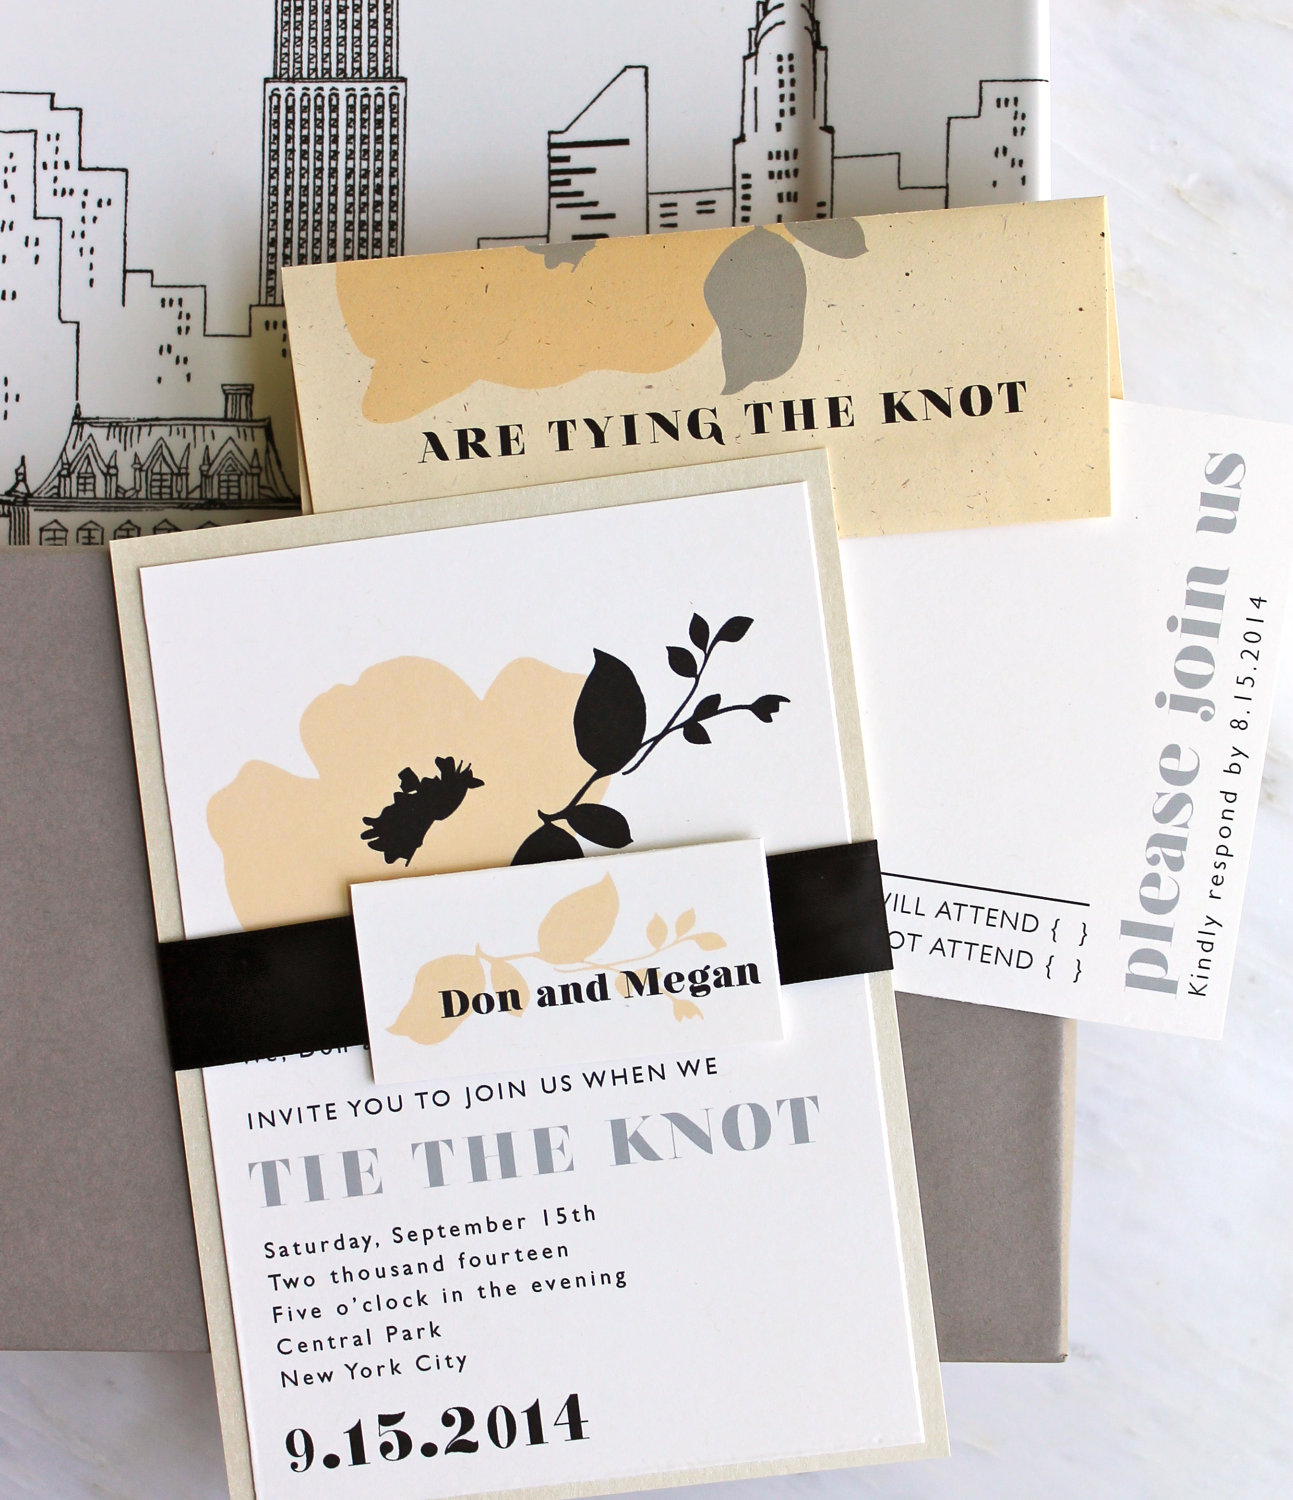 1960s-inspired-wedding-invitations-mad-men.original